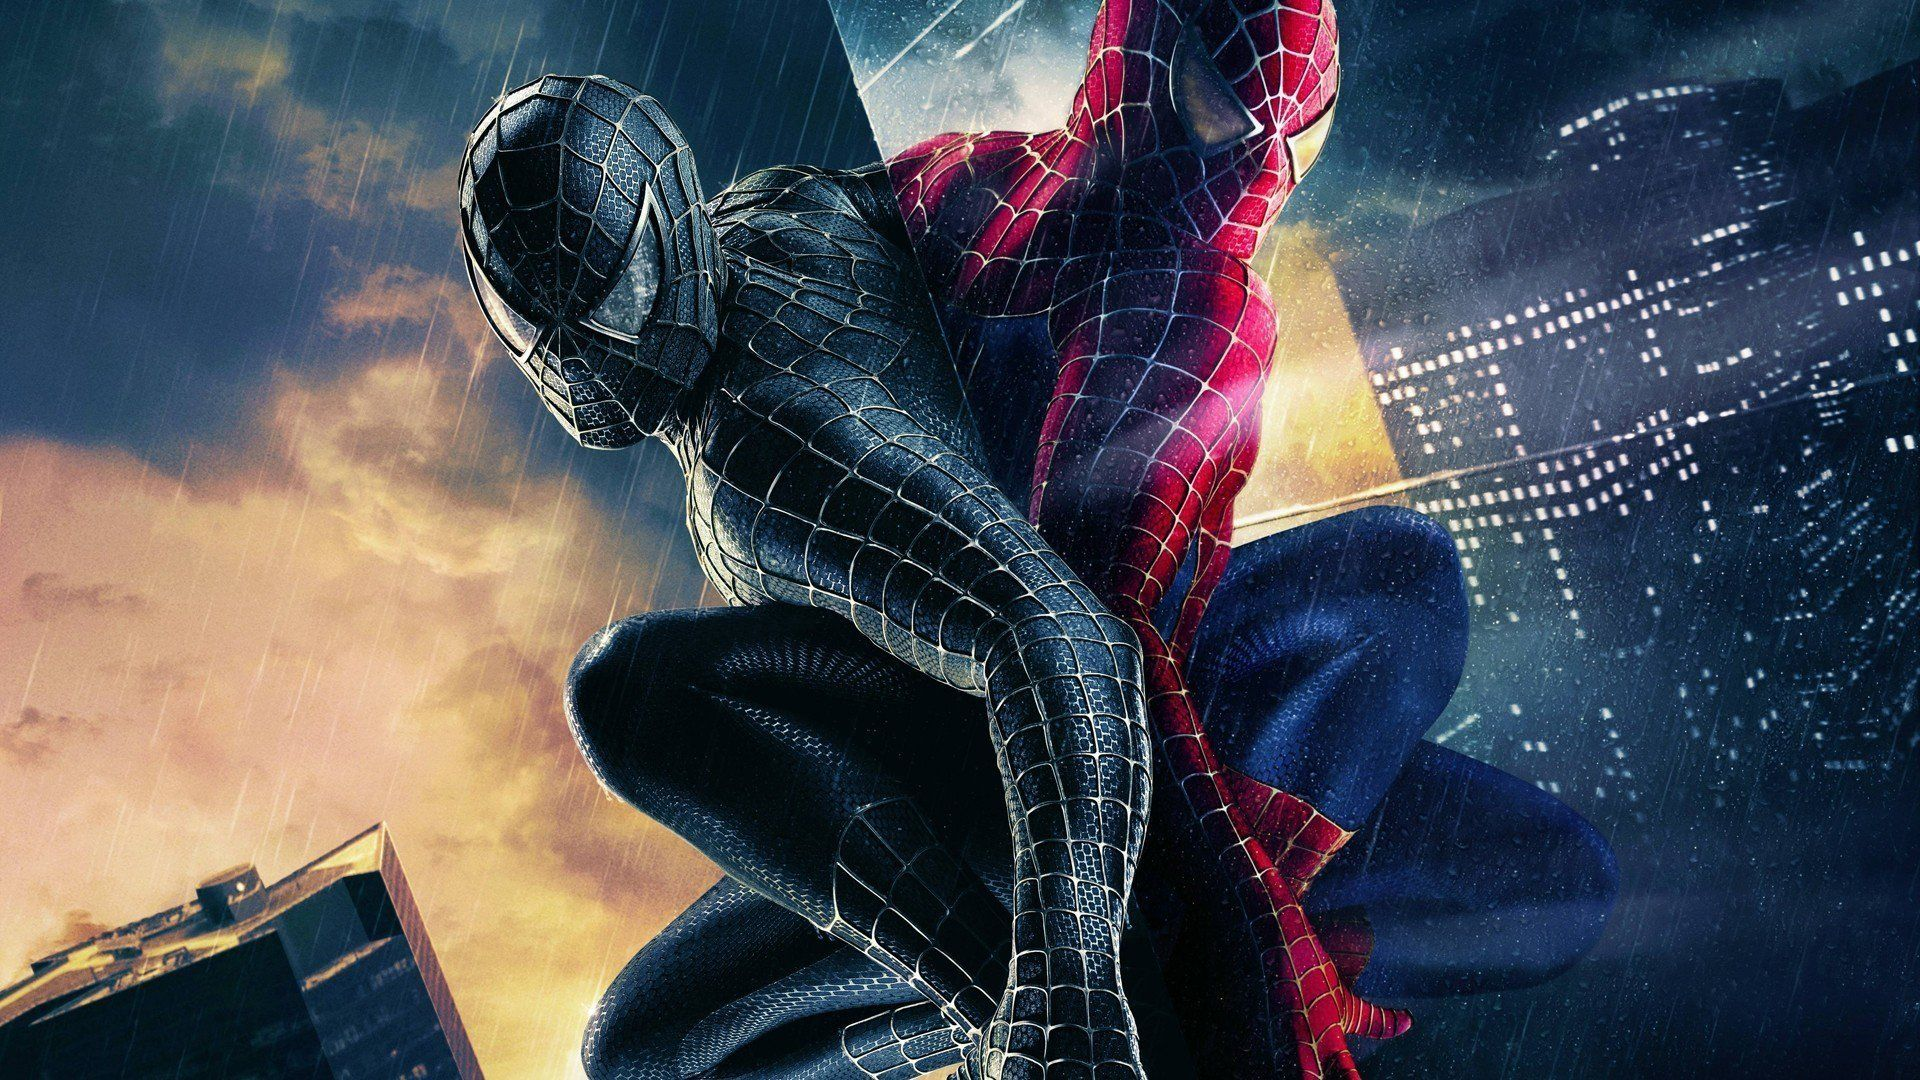 16 Spider Man 3 Hd Wallpapers Backgrounds Wallpaper Abyss Spiderman Spiderman Movie Wall Art Canvas Prints